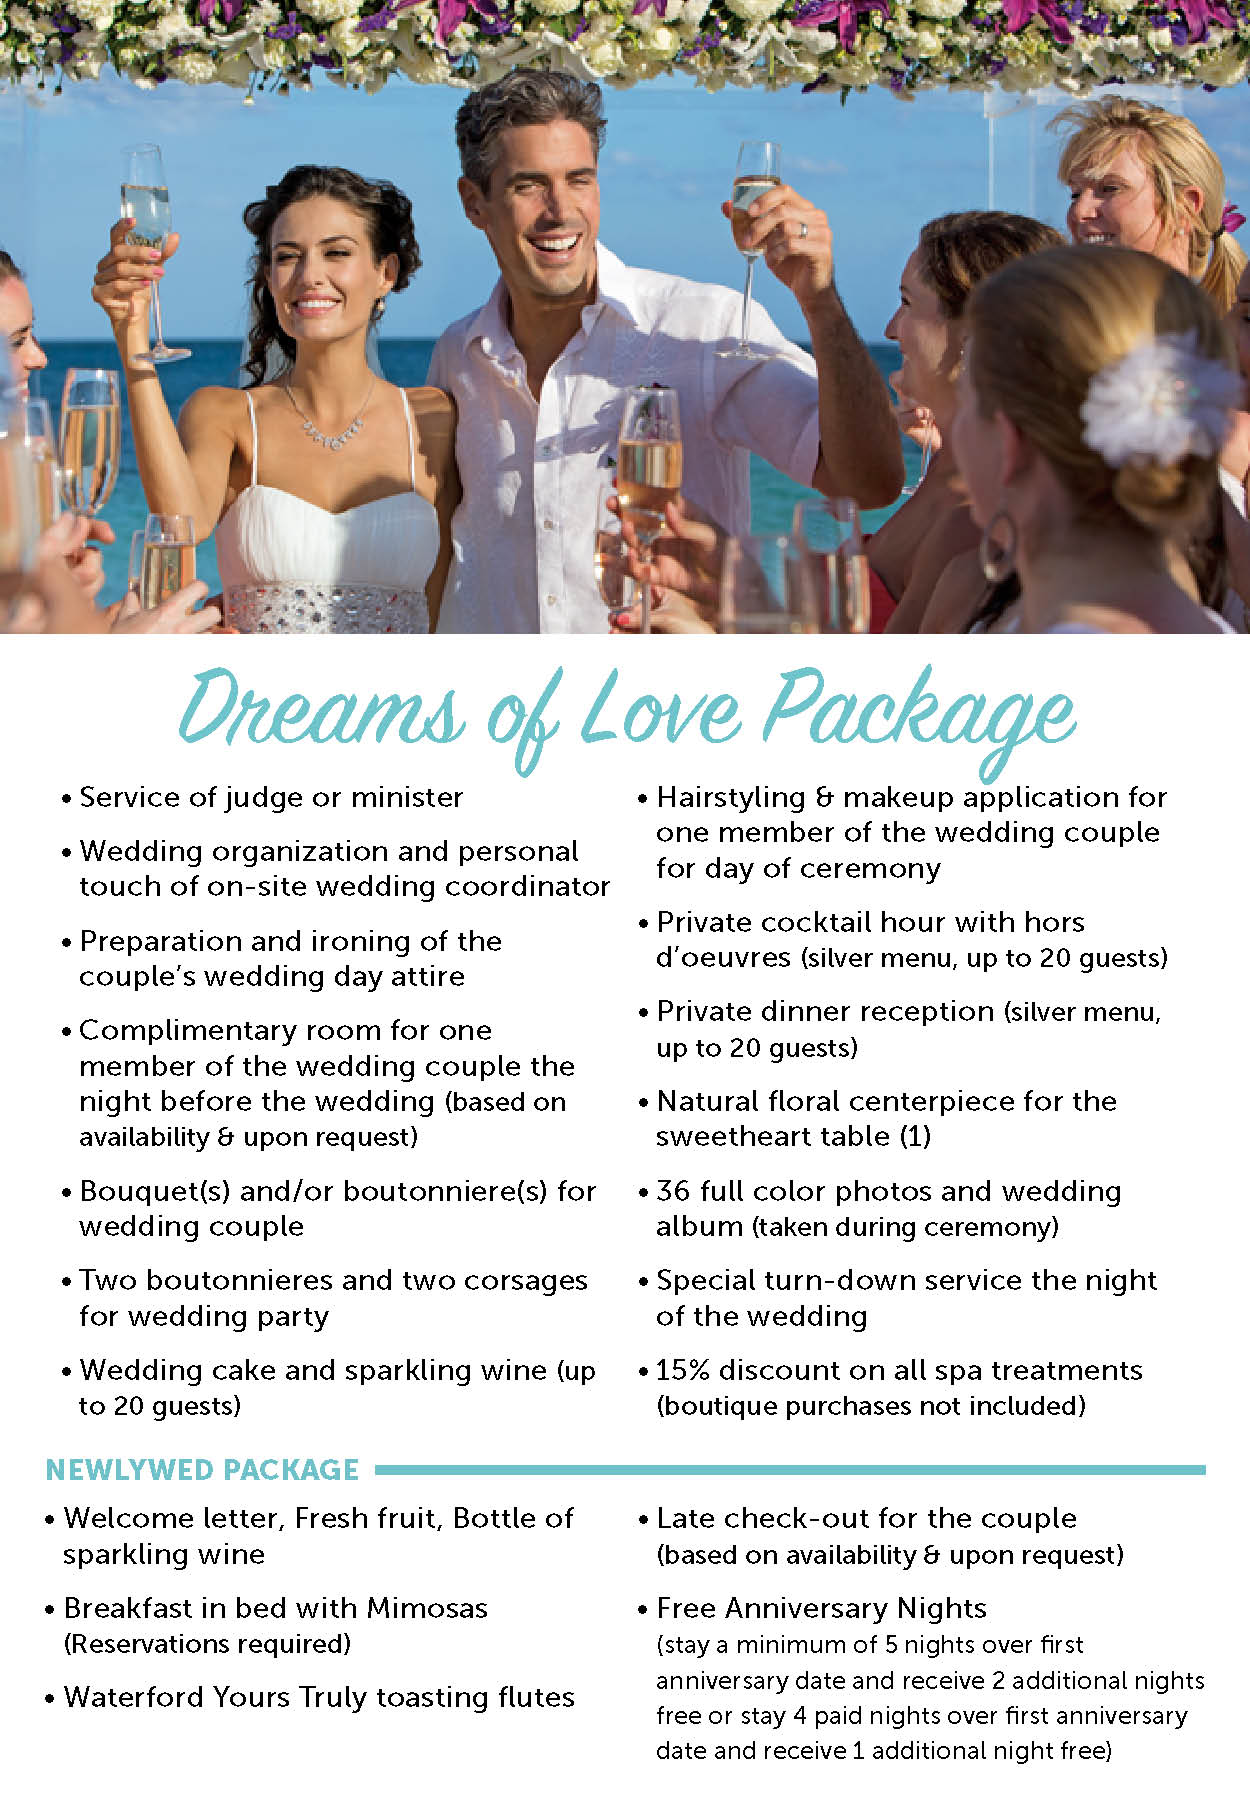 apple vacations dreams resorts packages